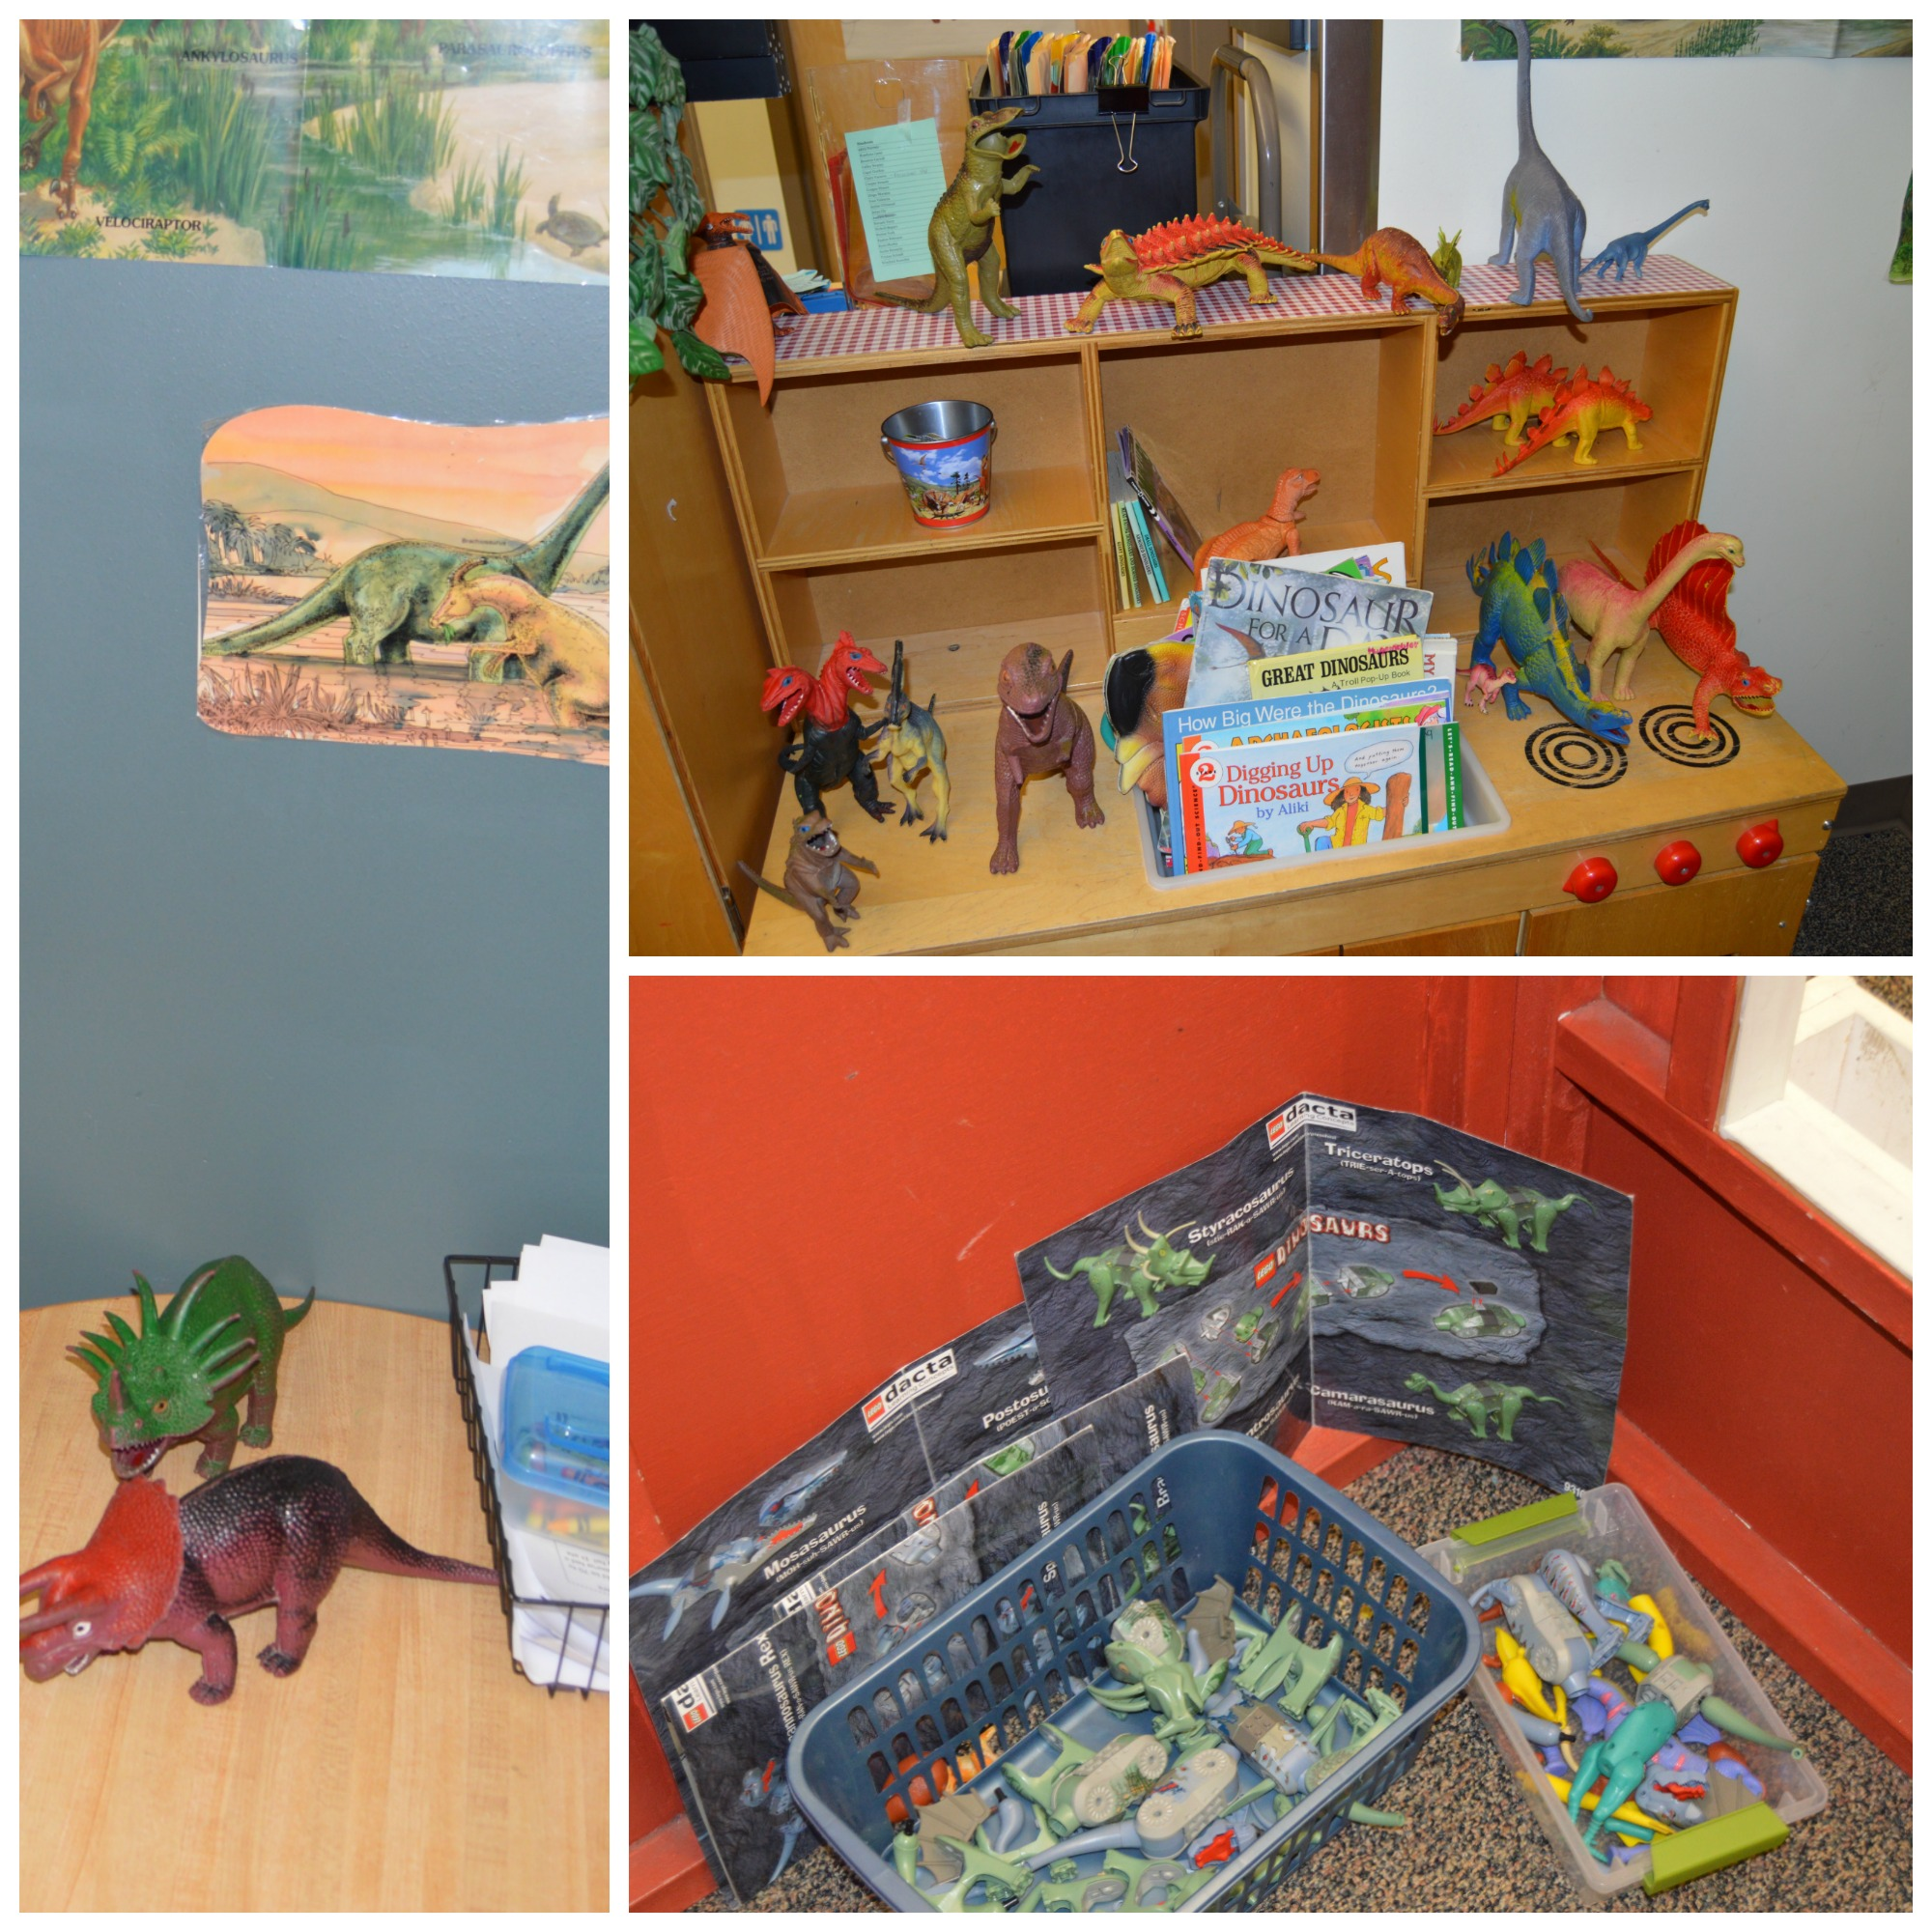 The Inside of the playhouse is ready for dinosaur-themed play and discovery. The conversations are exciting to say the least.